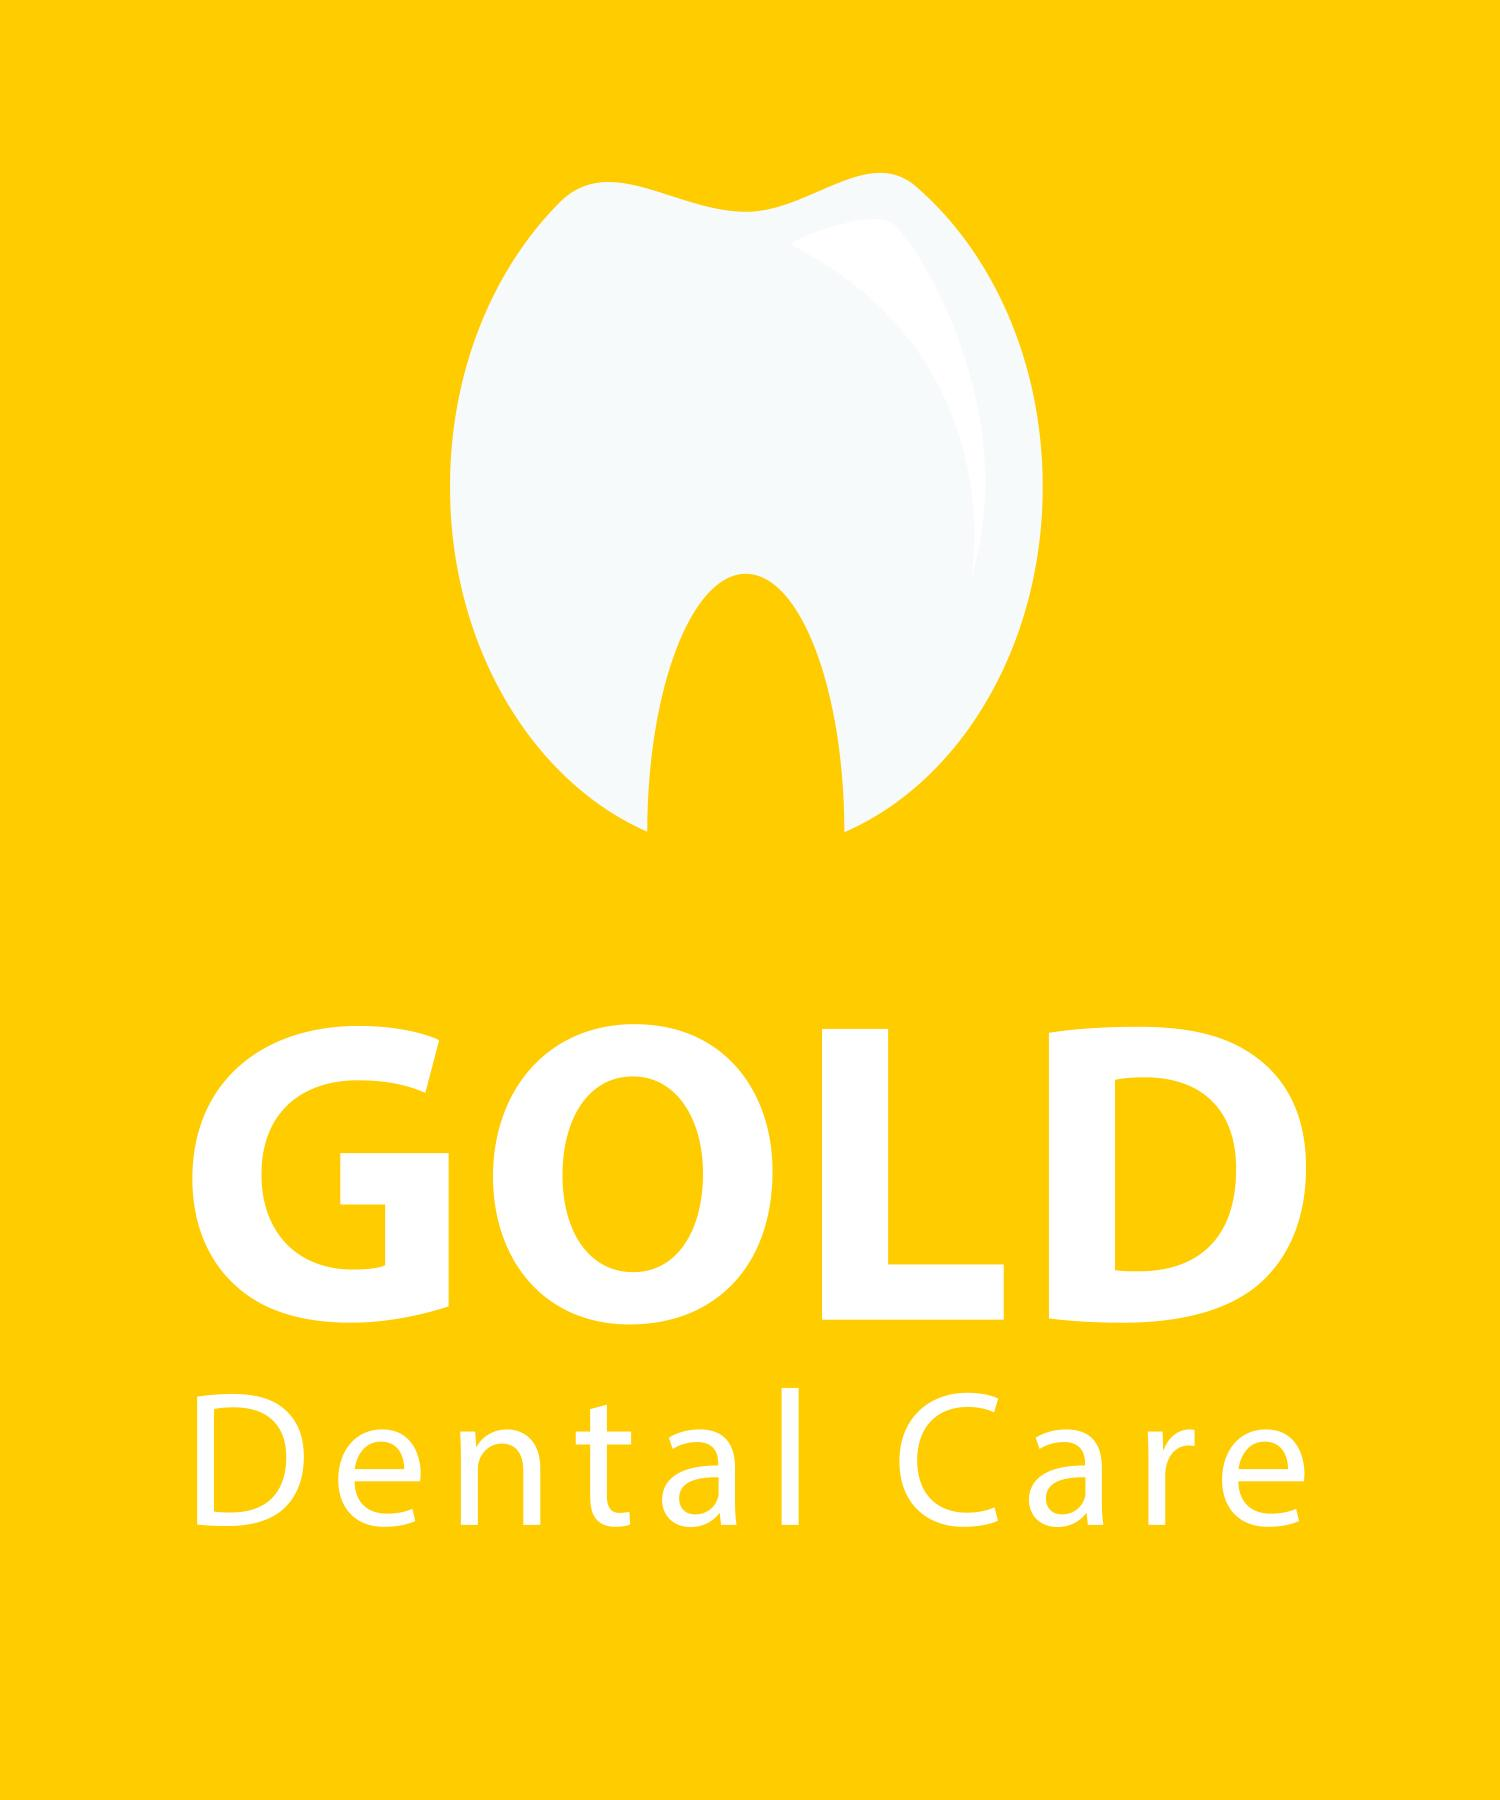 Gold Dental Care